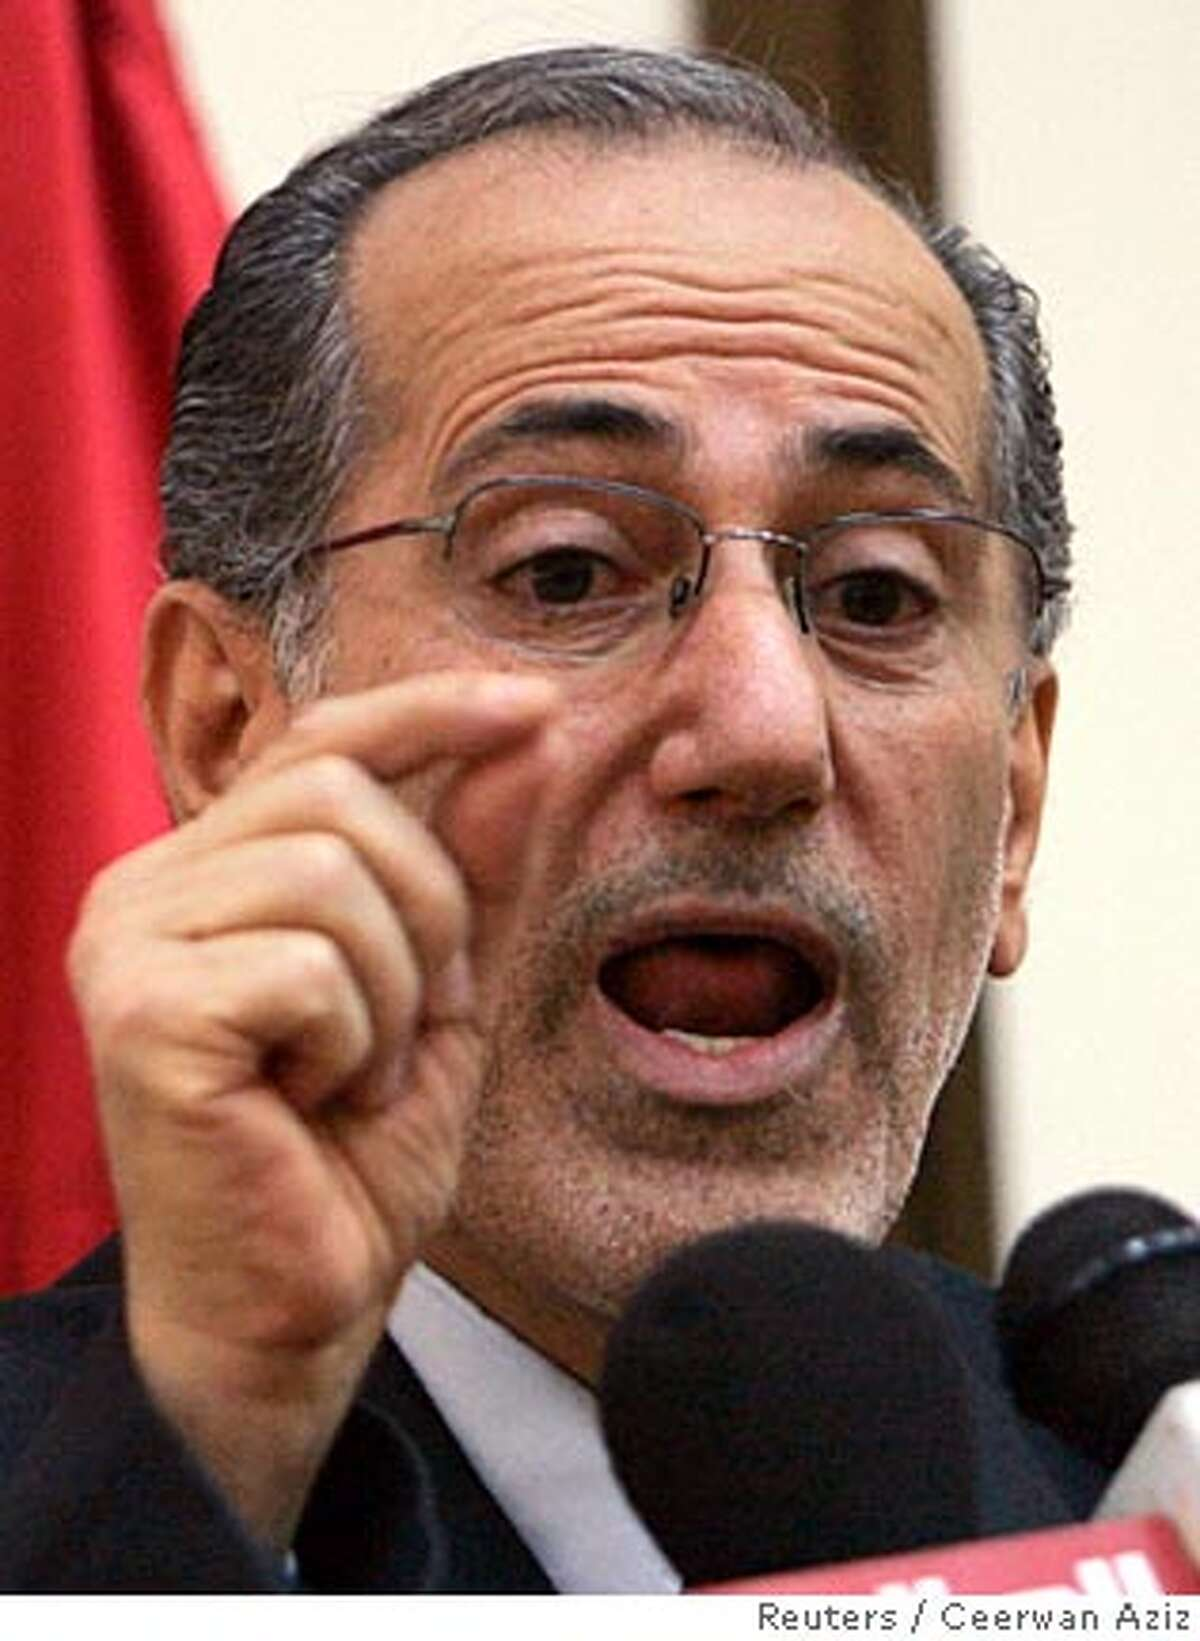 Iraq's National Security Advisor Mowaffaq al-Rubaie speaks during a news conference in Baghdad September 19, 2007. REUTERS/Ceerwan Aziz (IRAQ) Ran on: 10-06-2007 Iraqs National Security Adviser Mowaffak al Rubaie says Iran is interfering. Ran on: 10-06-2007